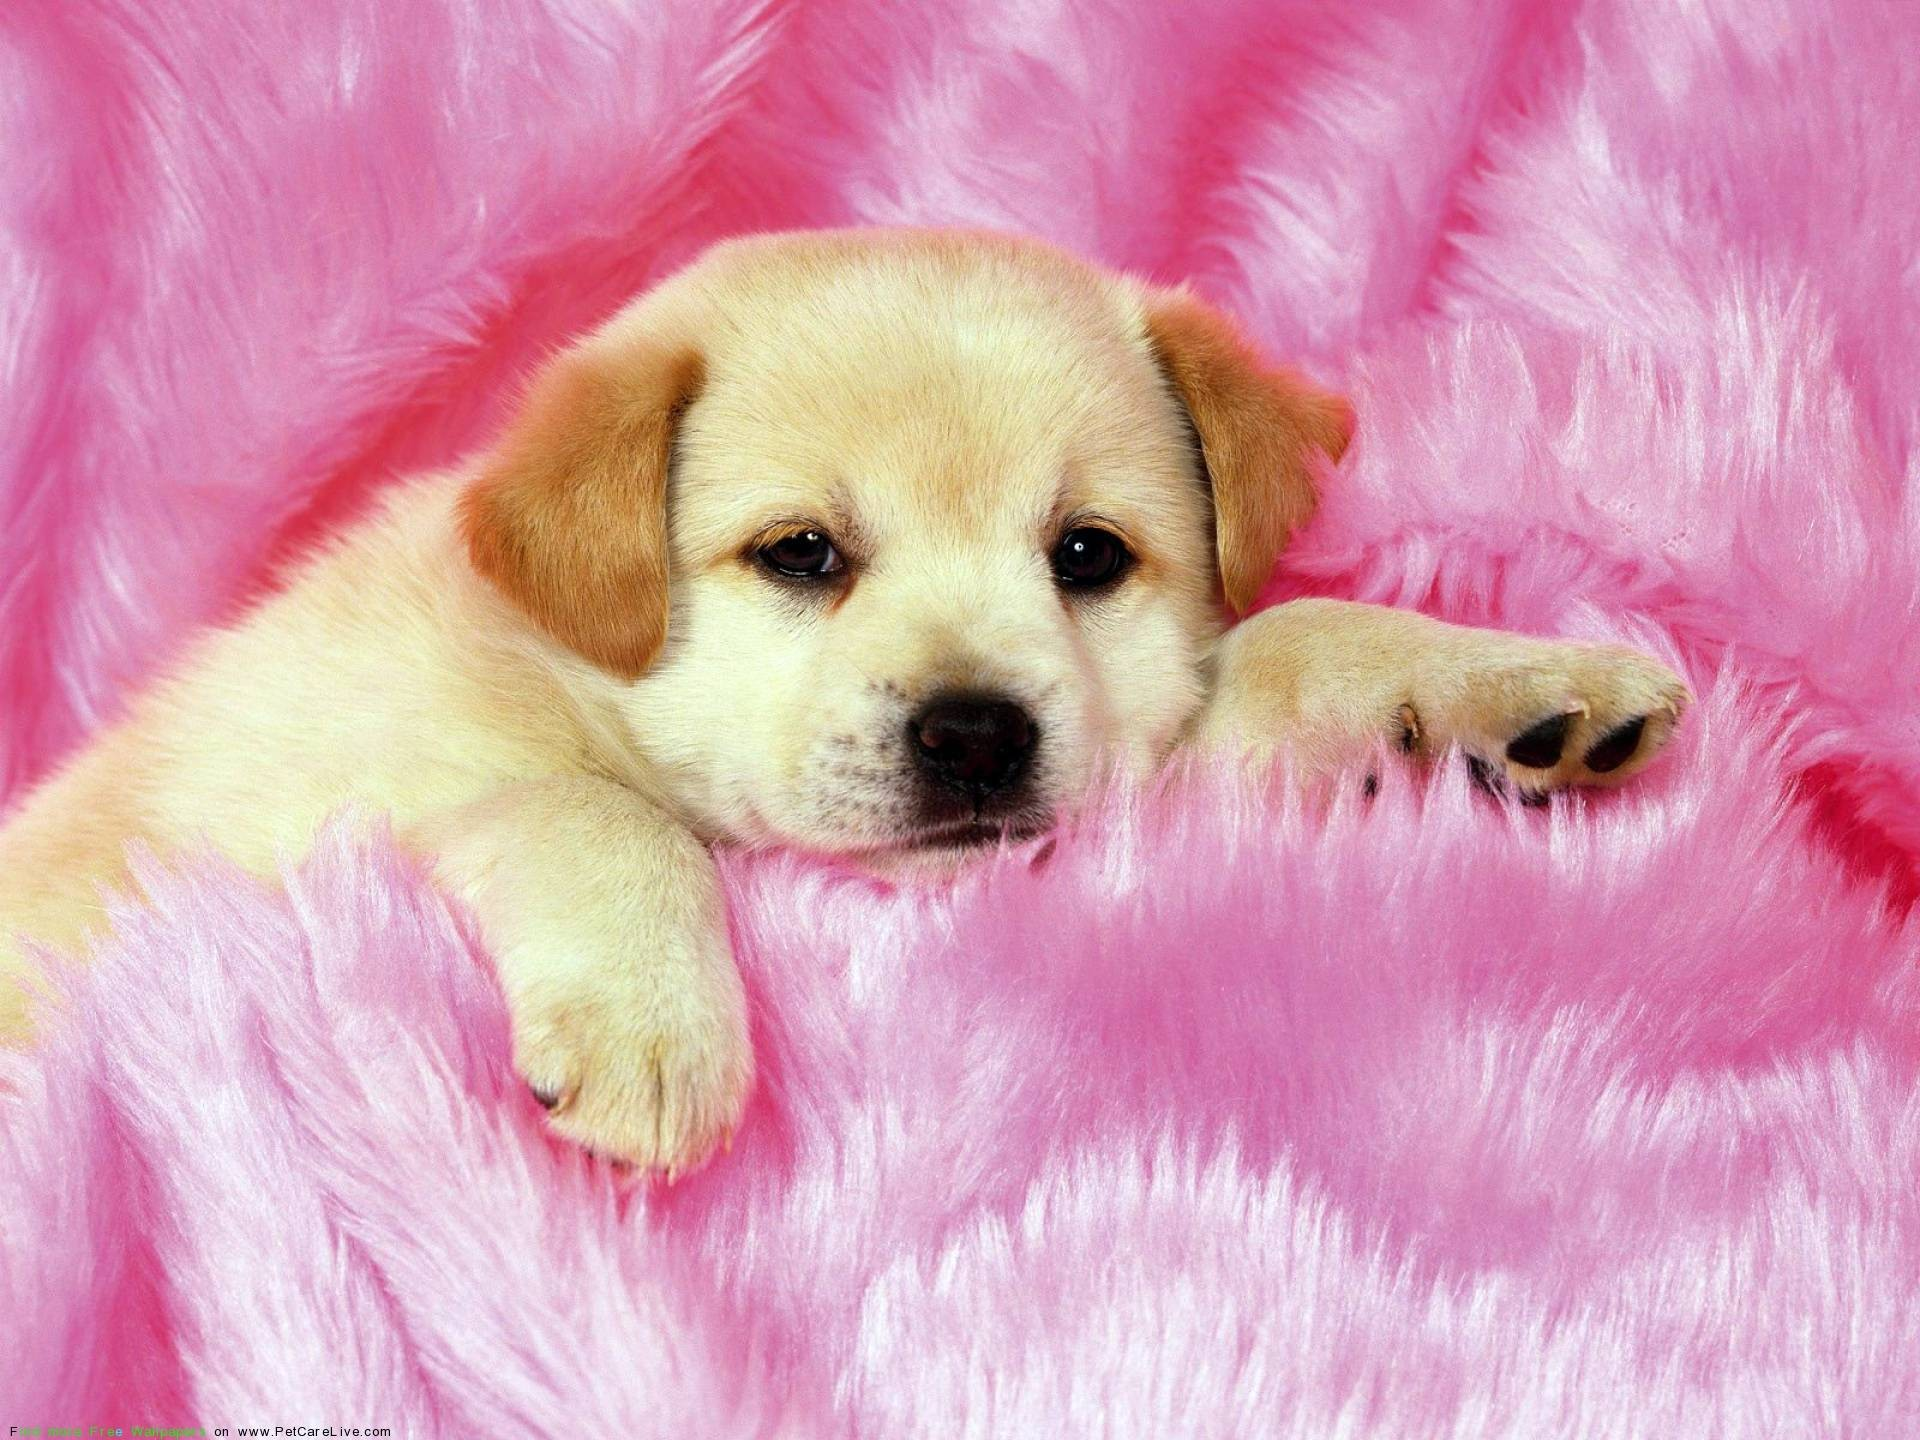 puppy wallpaper ·① download free cool backgrounds for desktop